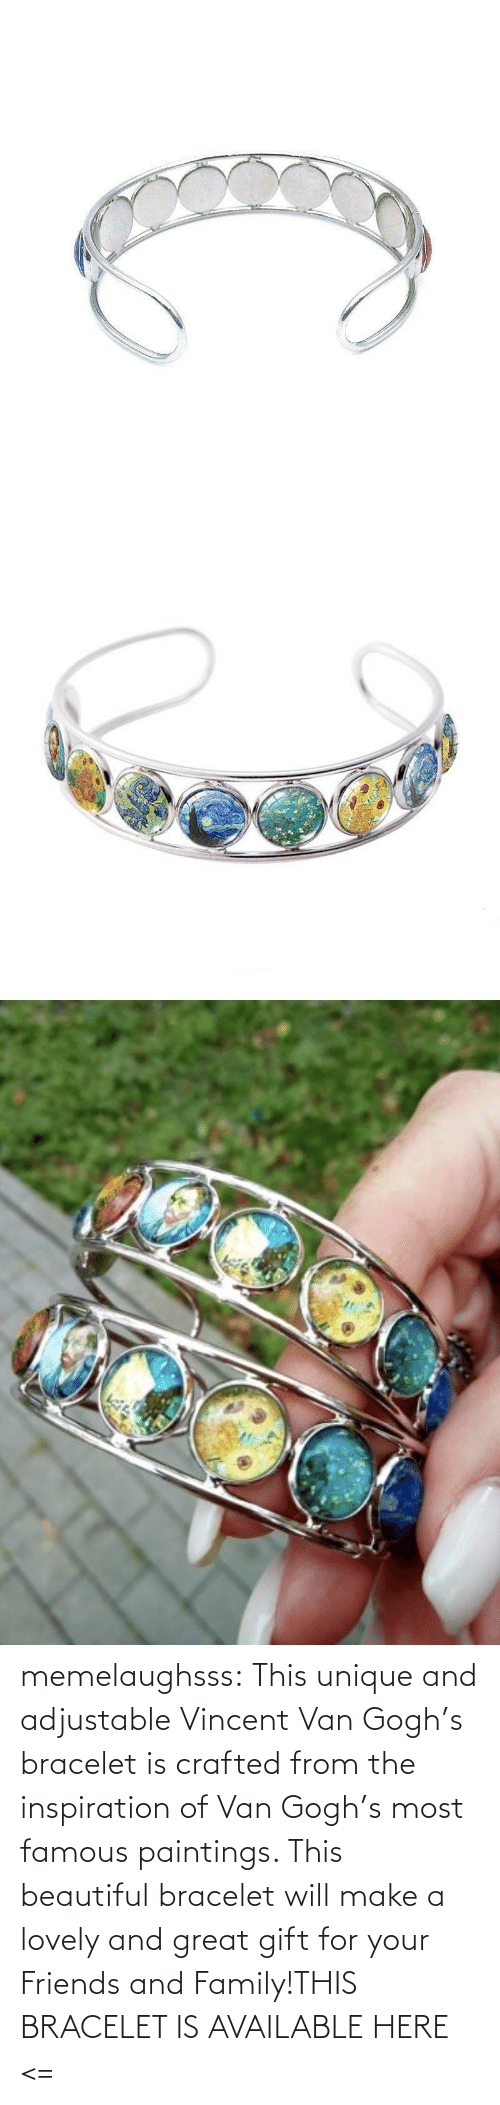 products: memelaughsss:  This unique and adjustable Vincent Van Gogh's bracelet is crafted from the inspiration of Van Gogh's most famous paintings. This beautiful bracelet will make a lovely and great gift for your Friends and Family!THIS BRACELET IS AVAILABLE HERE <=